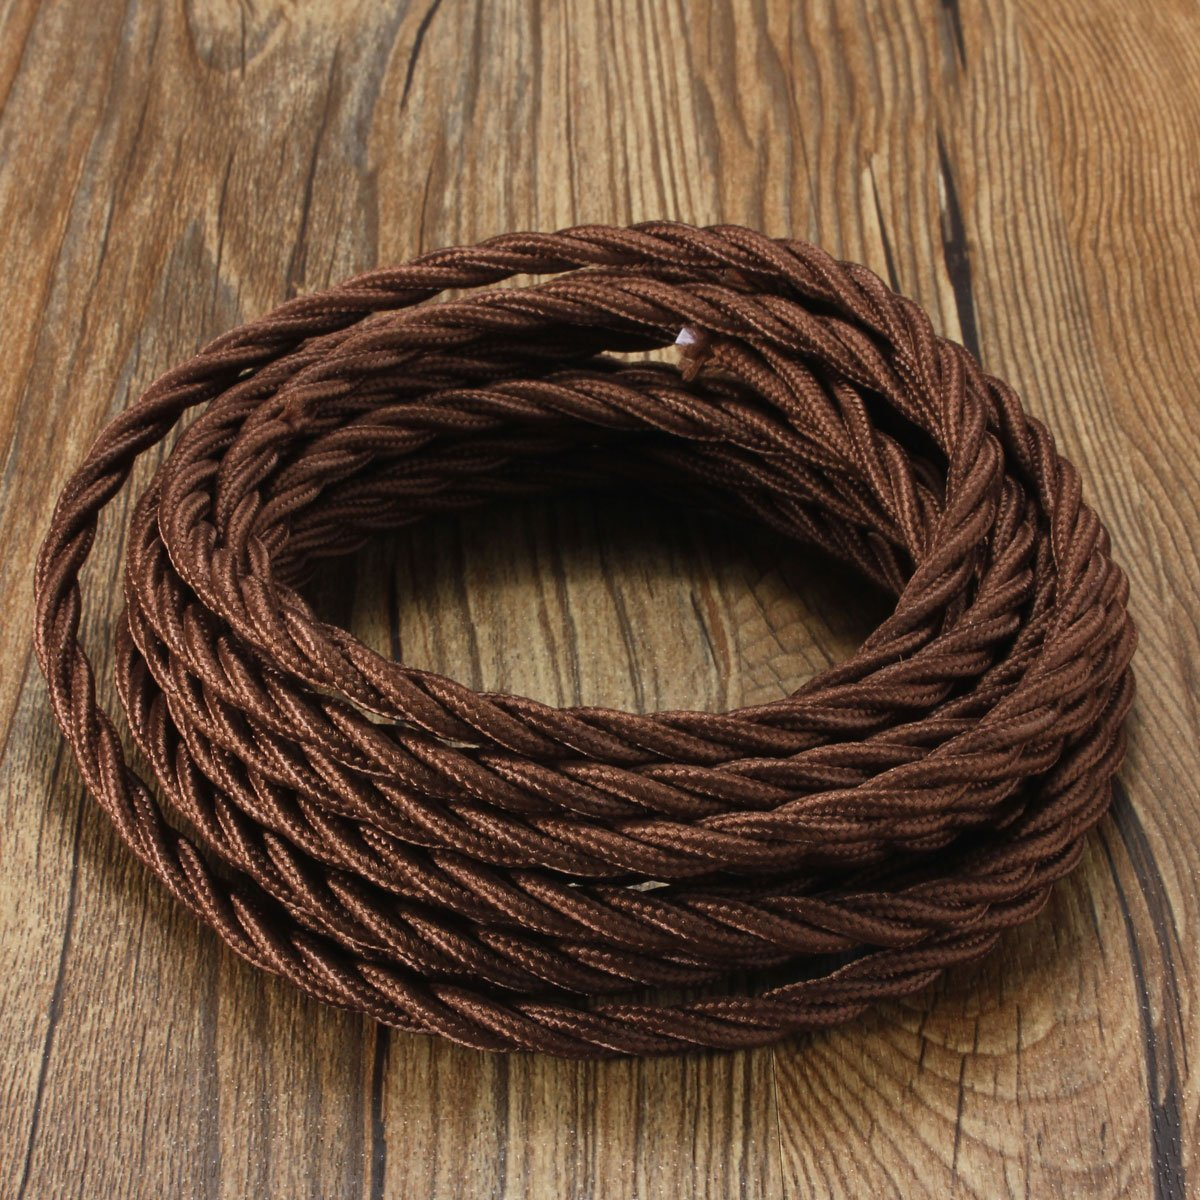 hight resolution of vintage fabric cable elfeland textile cable 5m twisted braided electric rope 3 core wire